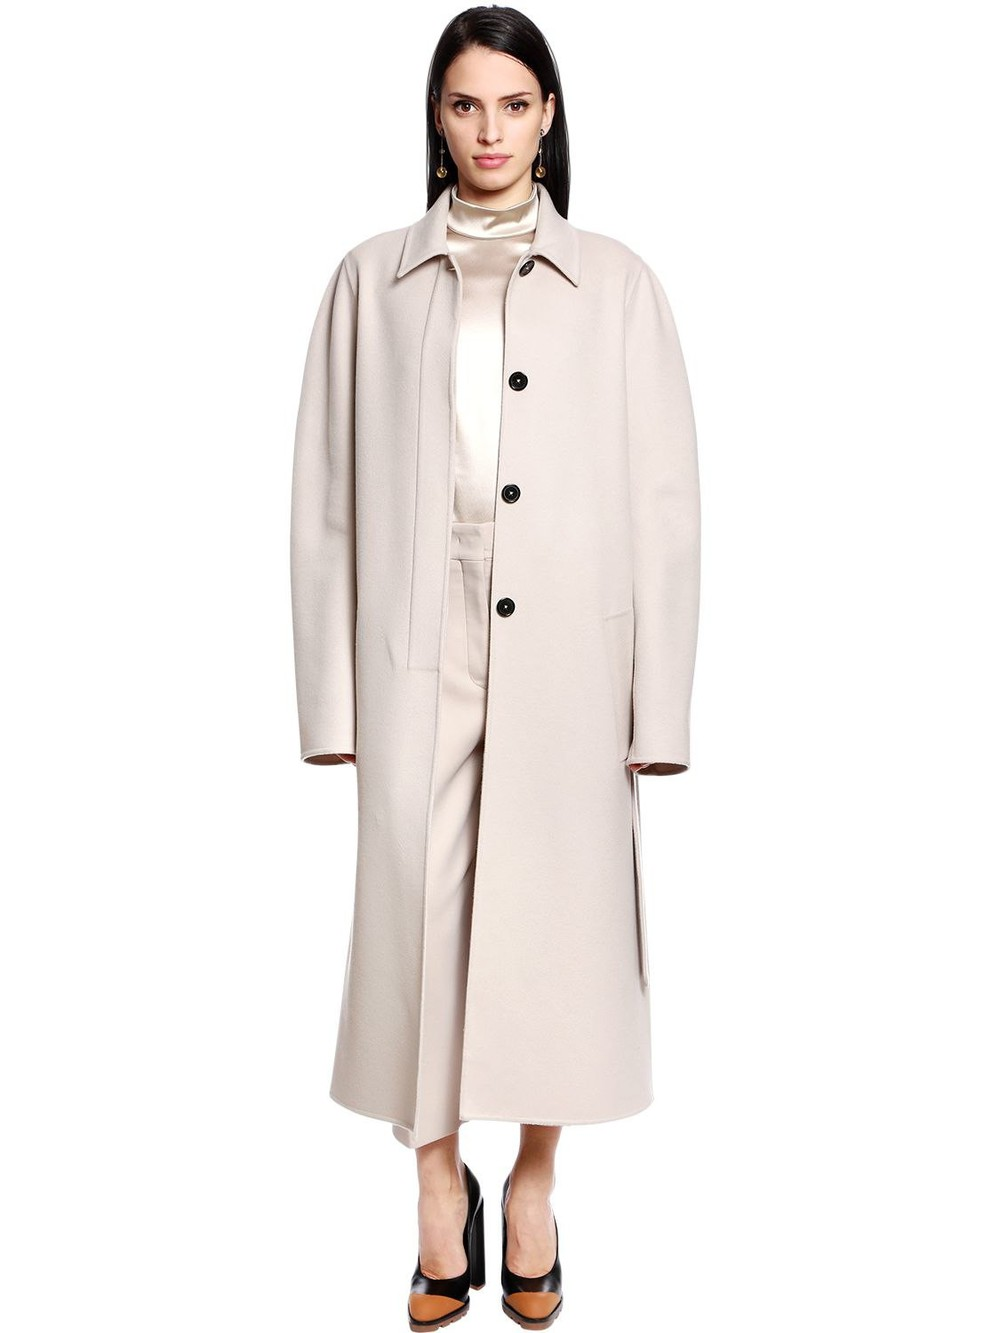 JIL SANDER Belted Virgin Wool & Cashmere Coat